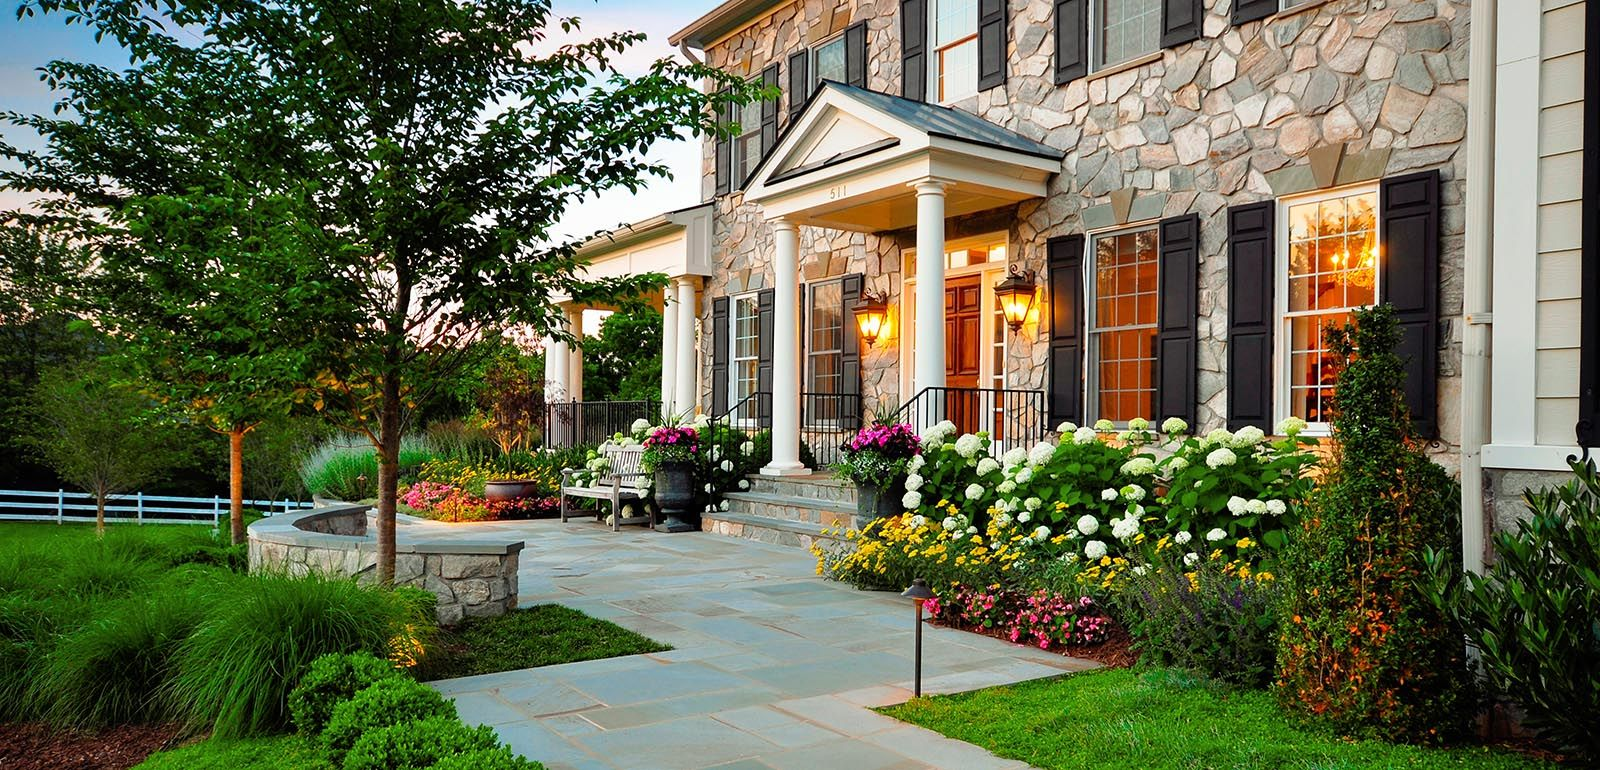 40 Front Yard Landscaping Ideas For A Good Impression. 40 Front Yard Landscaping Ideas For A Good Impression   Modern